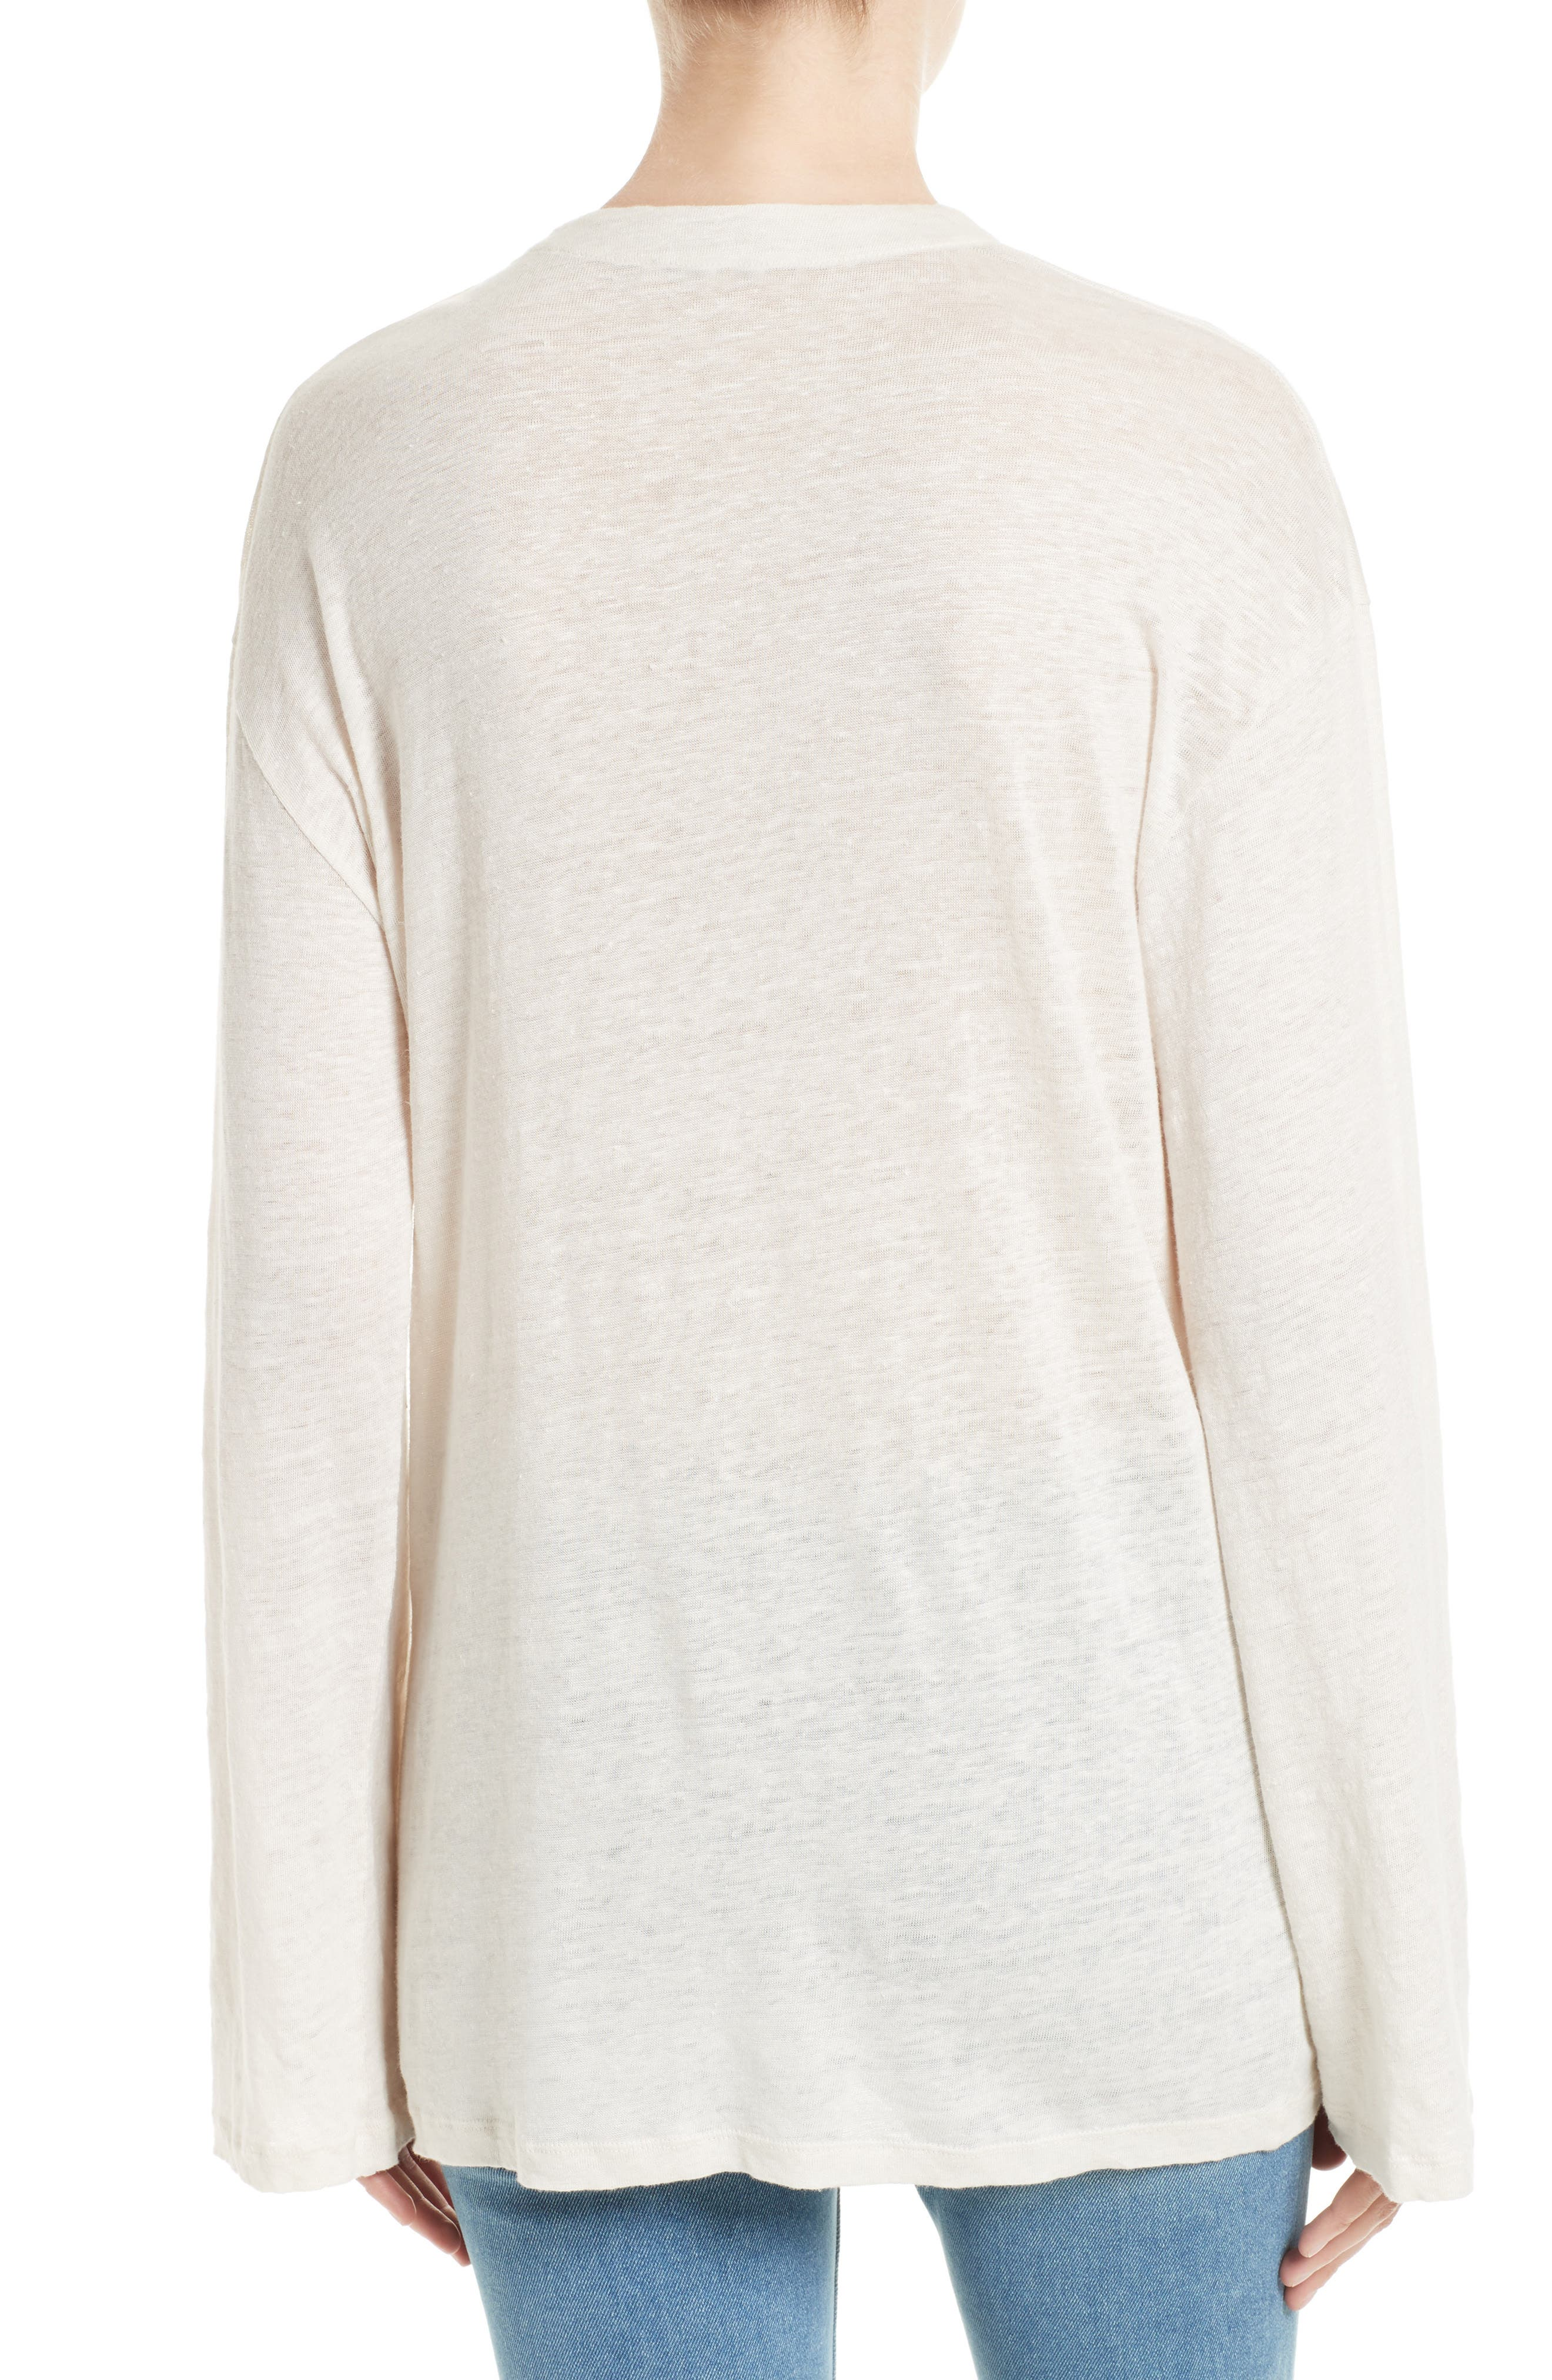 Alety Lace-Up Linen Top,                             Alternate thumbnail 2, color,                             Ivory